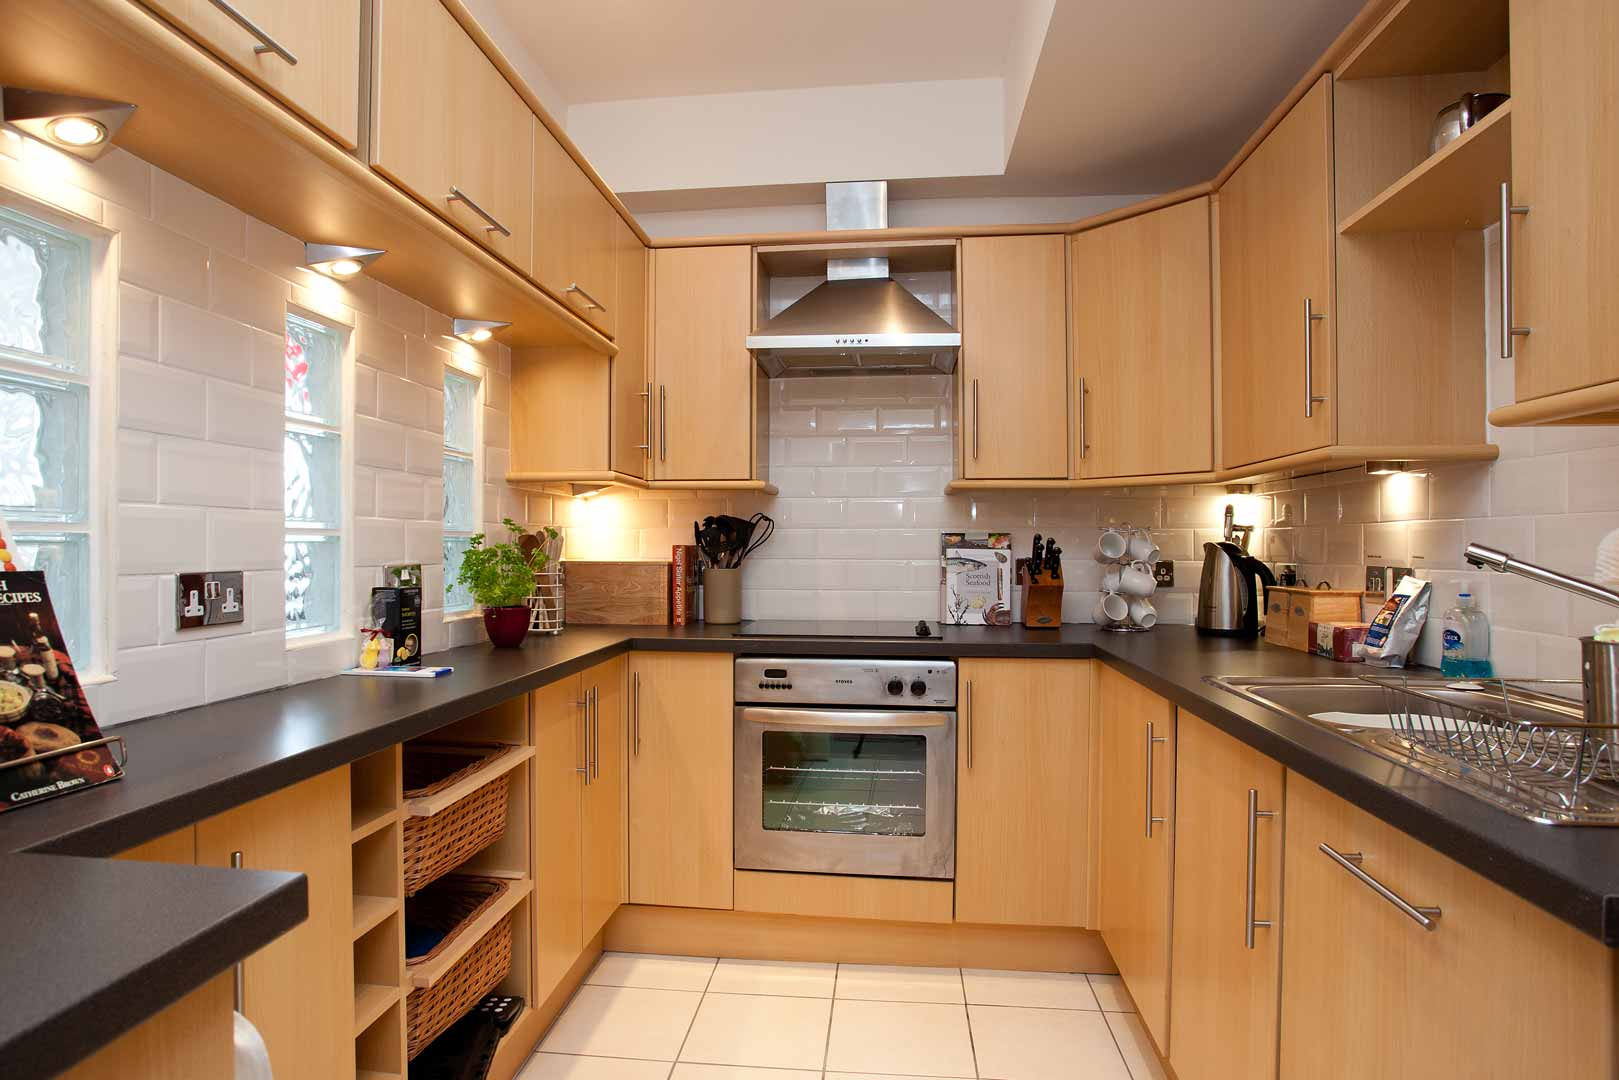 Saligo apartment: well equipped kitchen